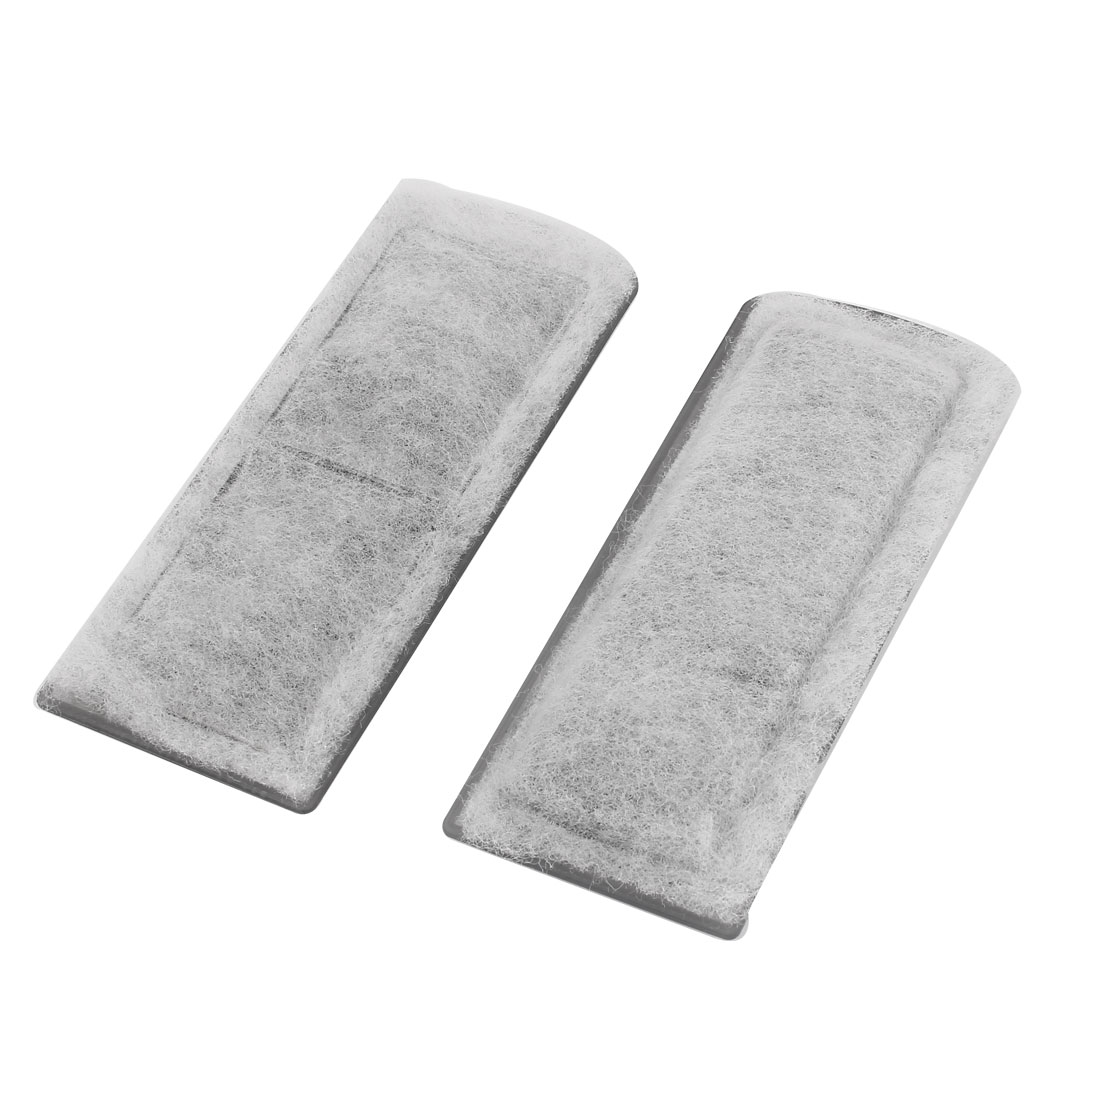 Fish Tank Pond Aquarium Active Carbon Sponge Filter Replacement 2 Pcs